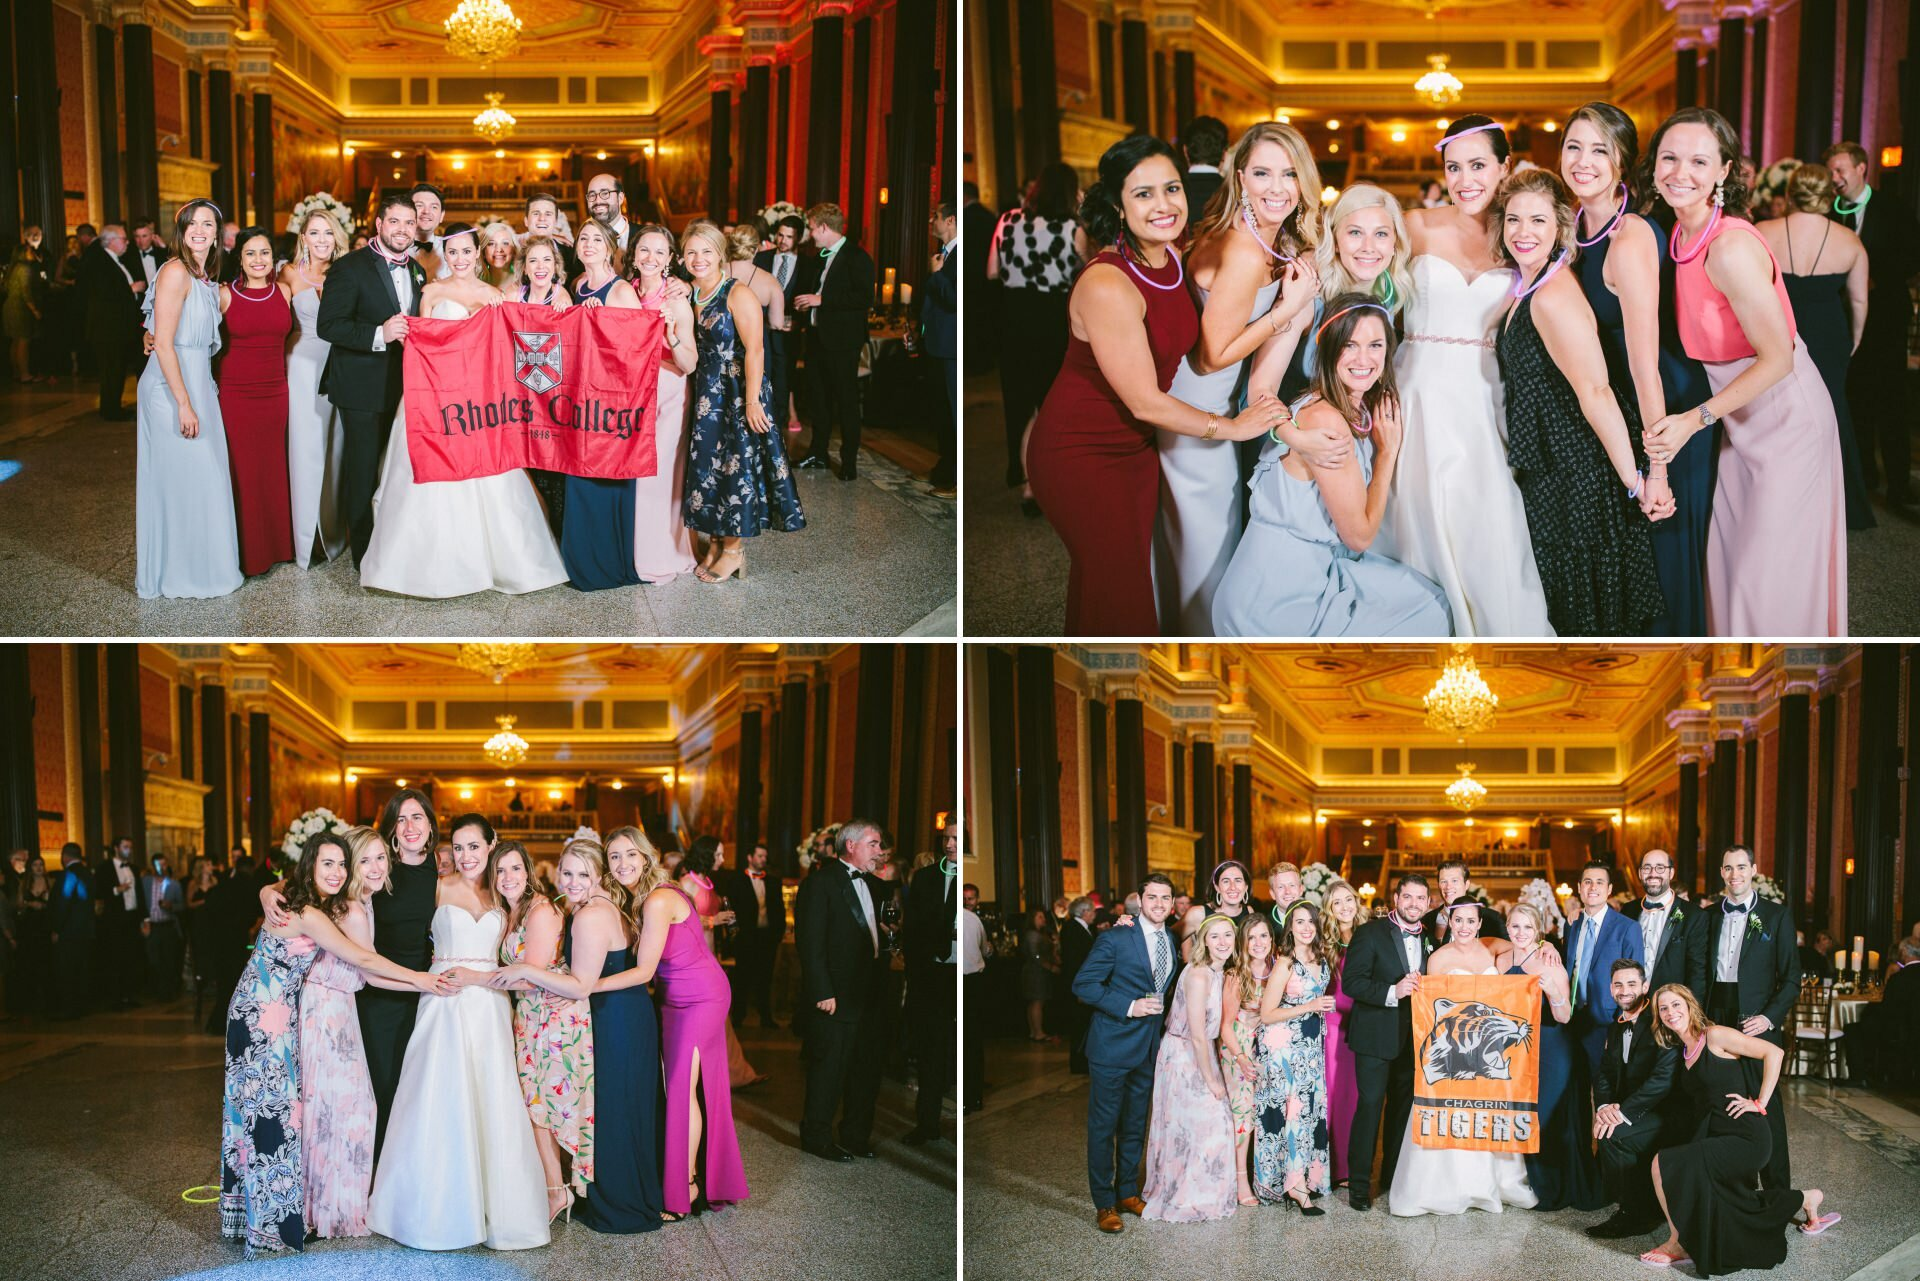 Playhouse State Theater Wedding Photographer in Cleveland 2 38.jpg